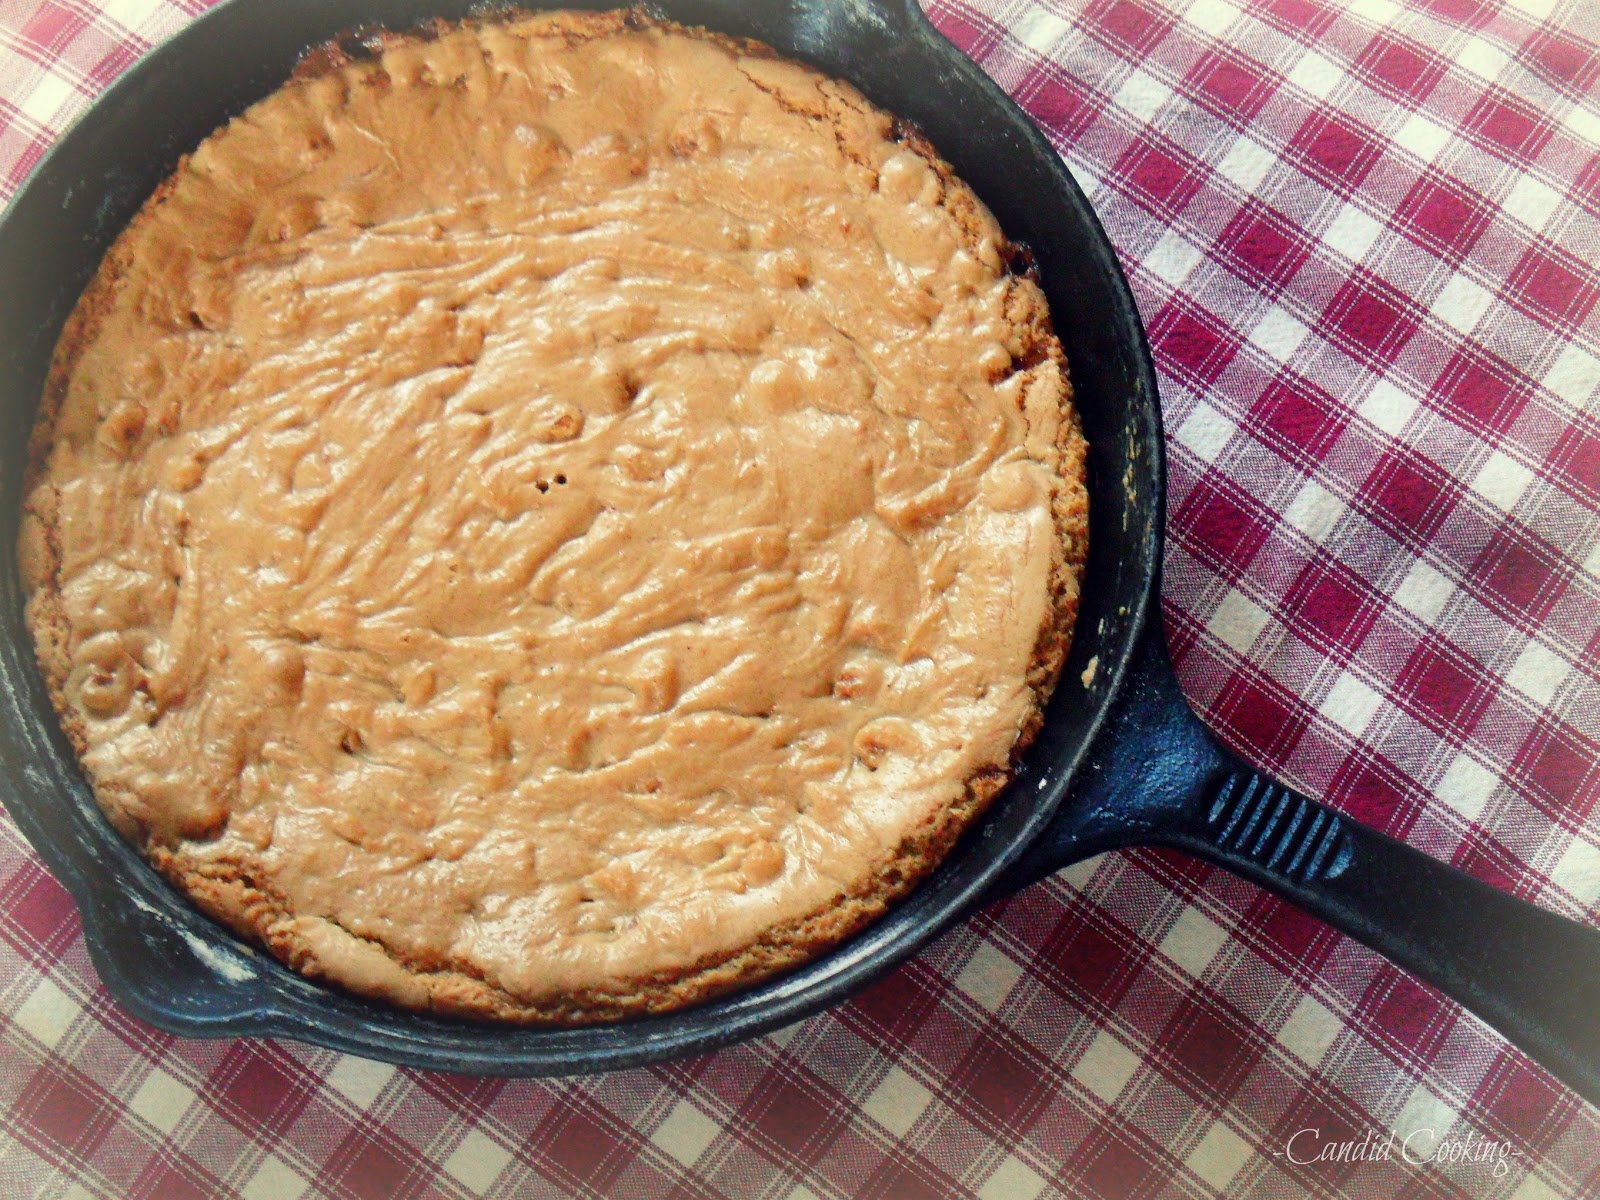 Candid Cooking: One Pan Caramel Chip Skillet Cookie